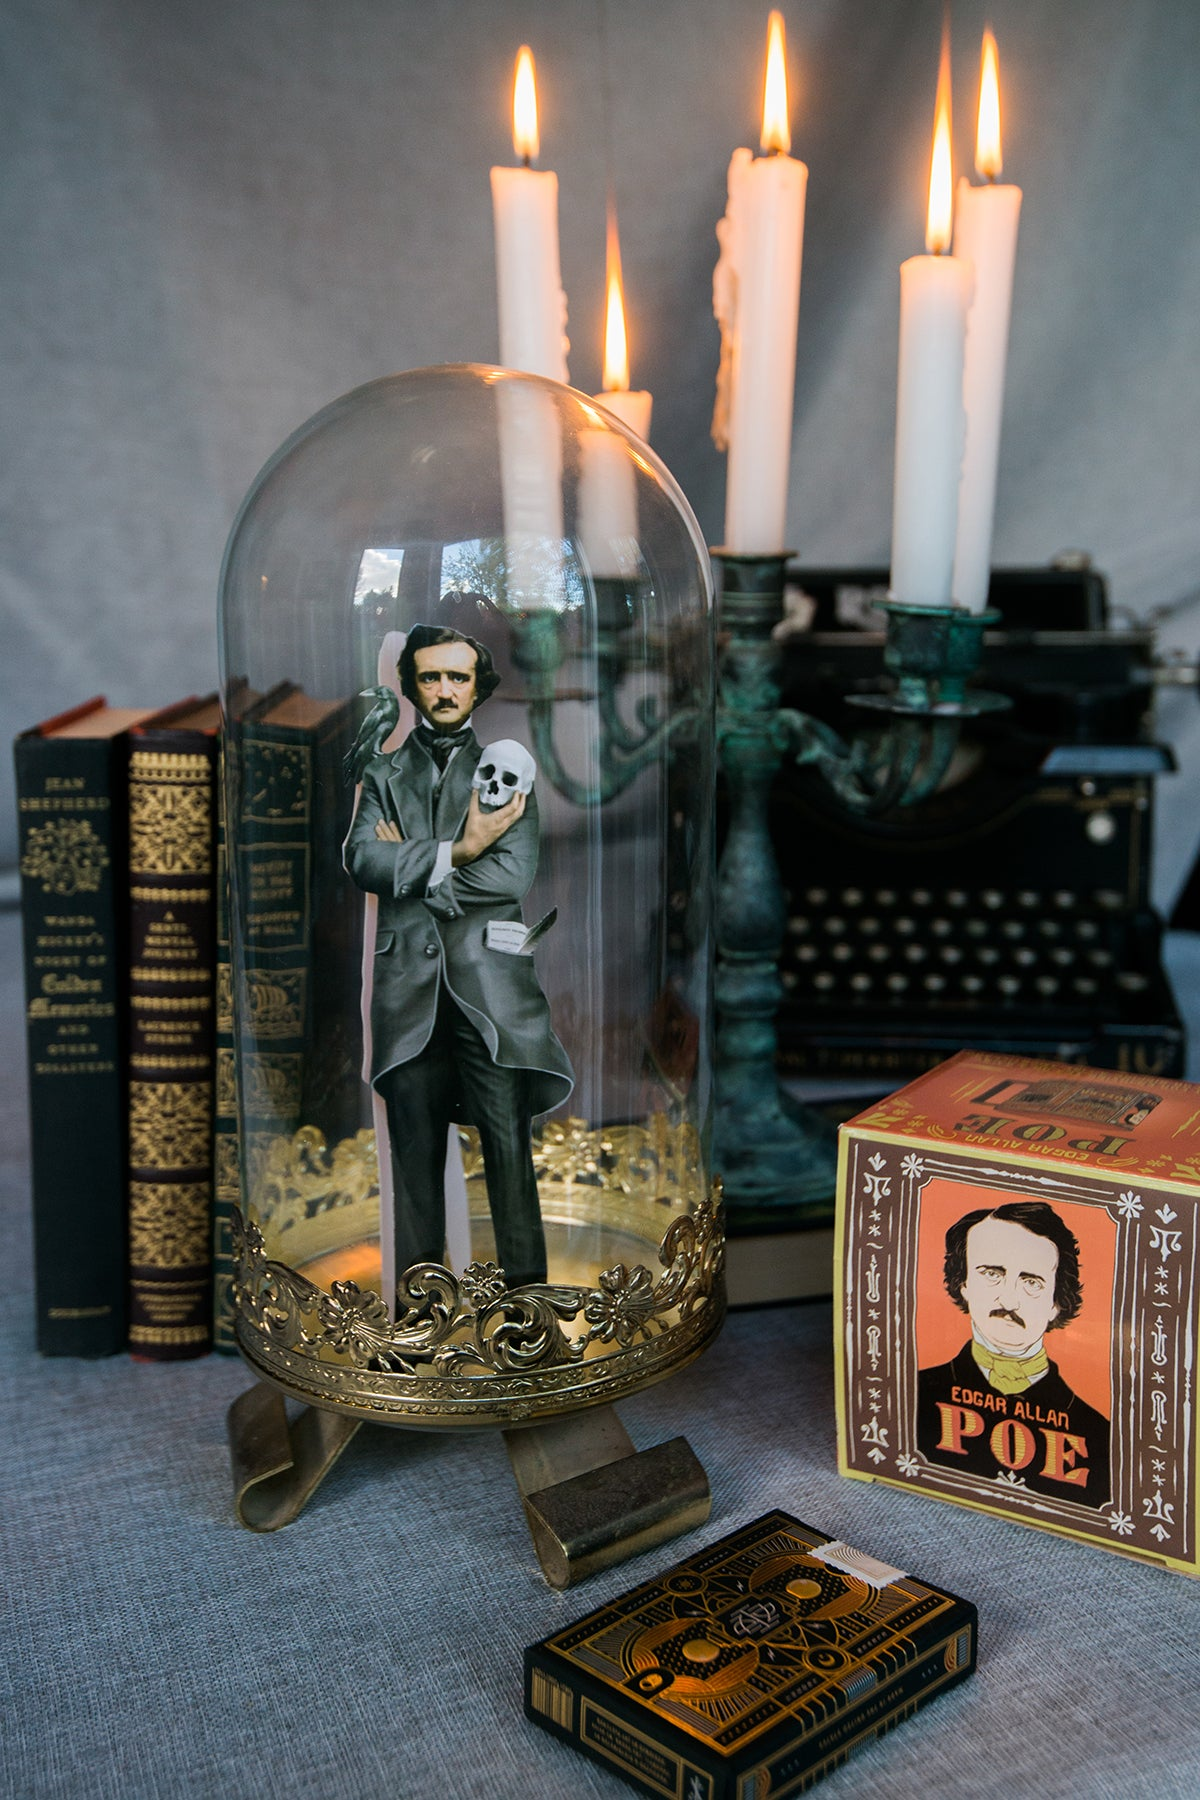 Edgar Allan Poe Gift Box Unique Gift For Book Lovers My Weekend is Bookd